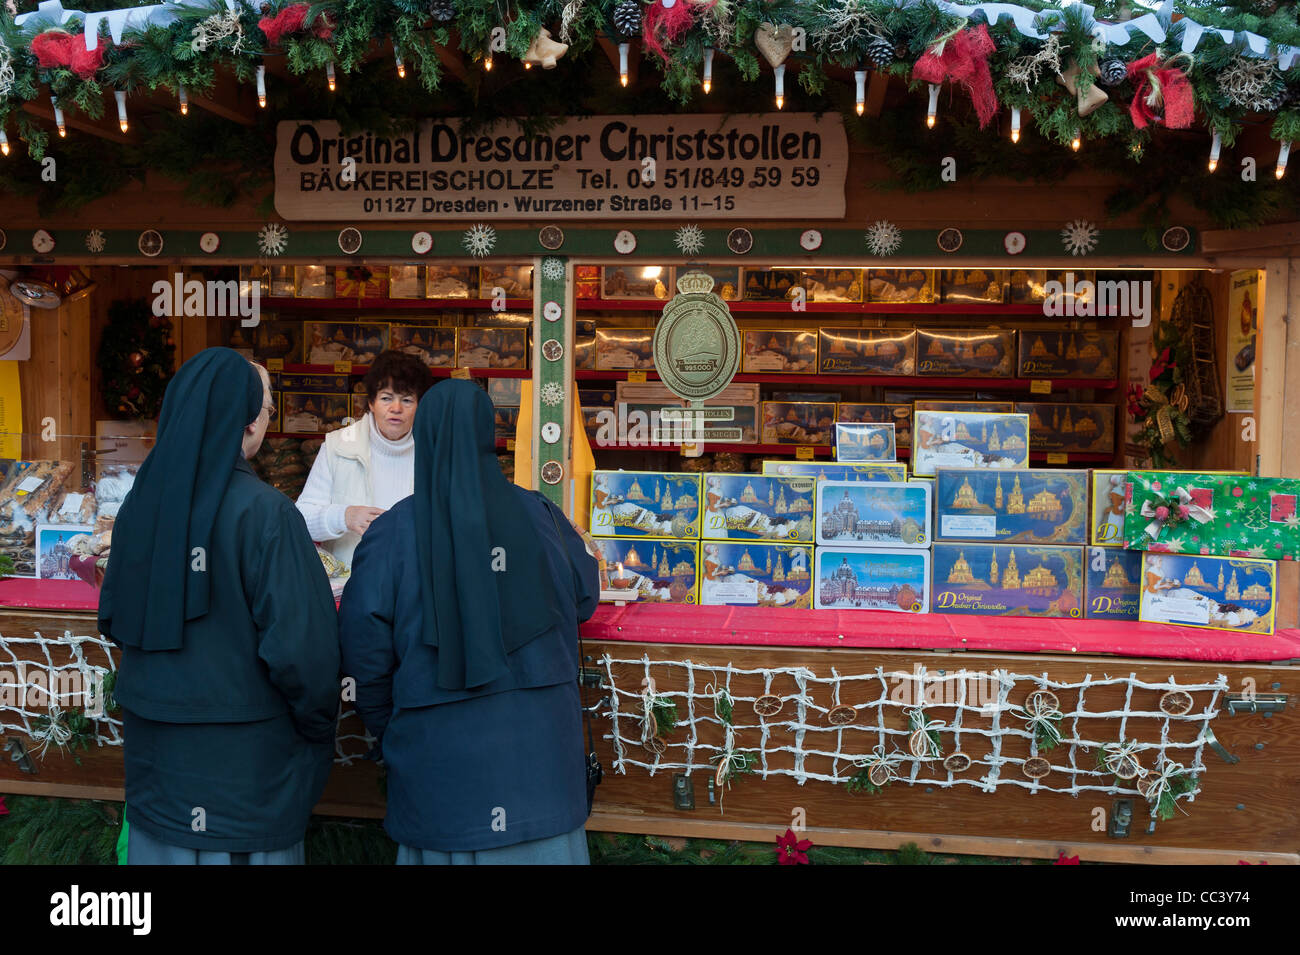 Two nuns at a Christmas Stollen cake stall. Stietzelmarkt Christmas market in Dresden. Saxony, Germany, Europe - Stock Image